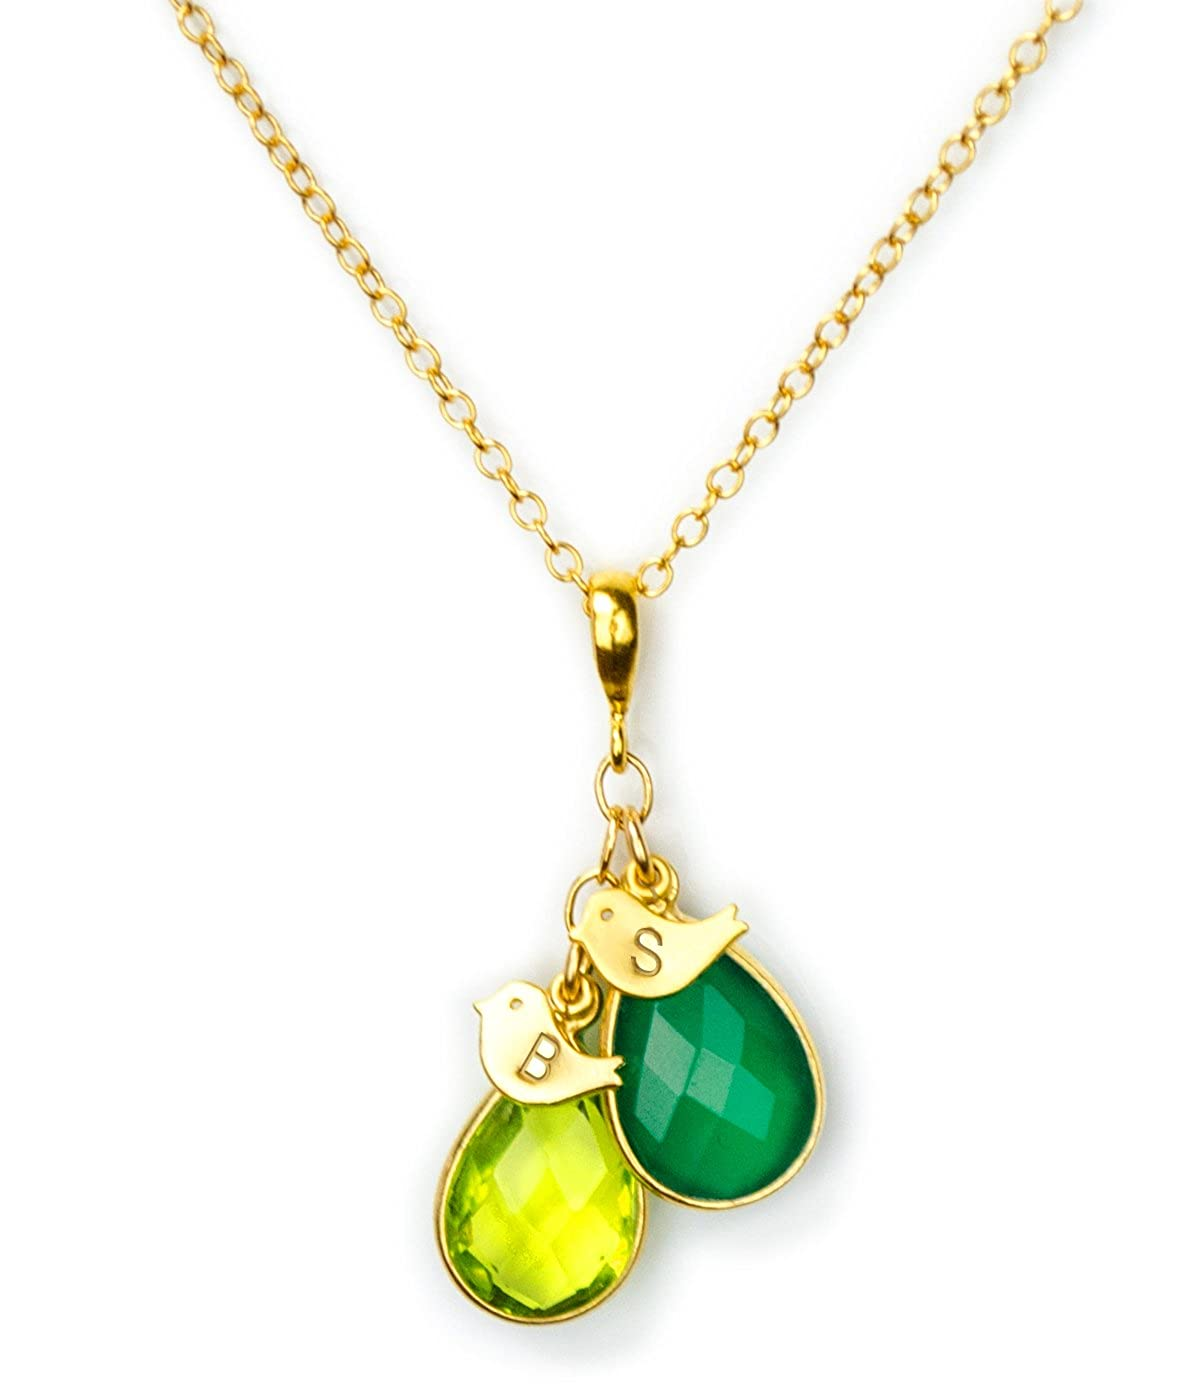 Danique Jewelry Gold Mothers Necklace with 2 Teardrop Birthstones and 2 Baby Bird Charms